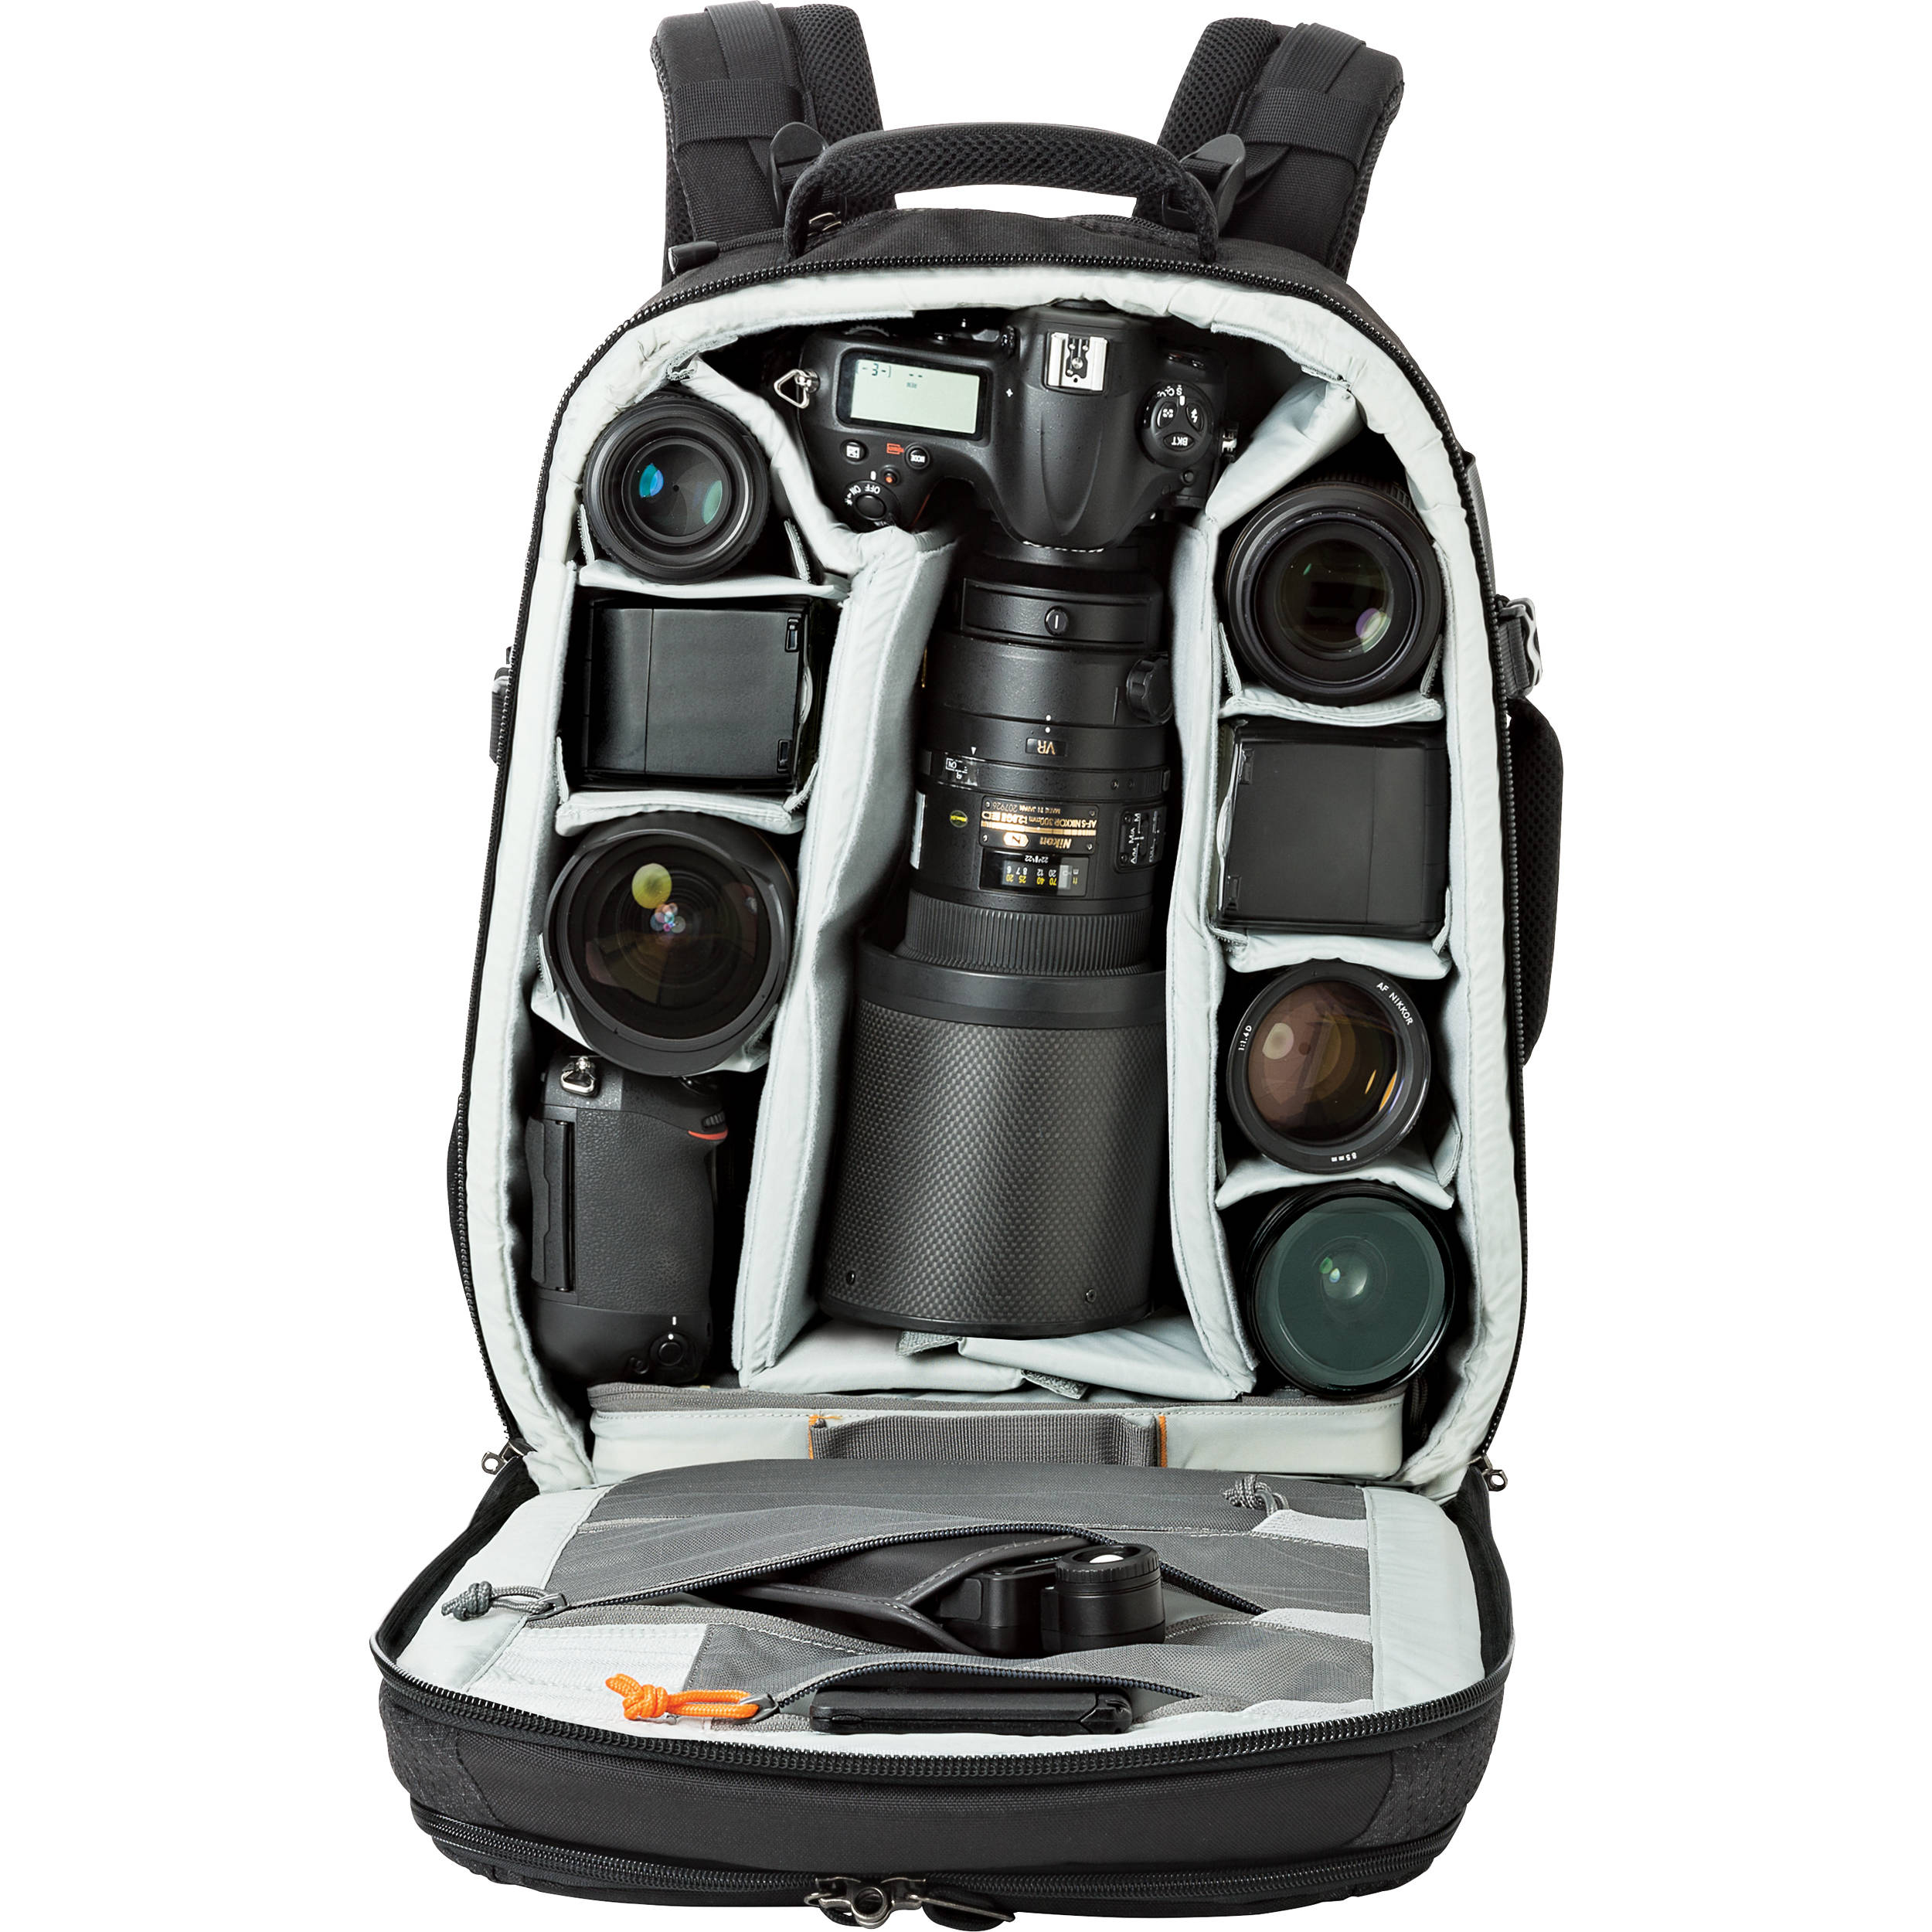 Garage Seat Lens 8 Ideas For Storing Your Camera Gear B H Explora